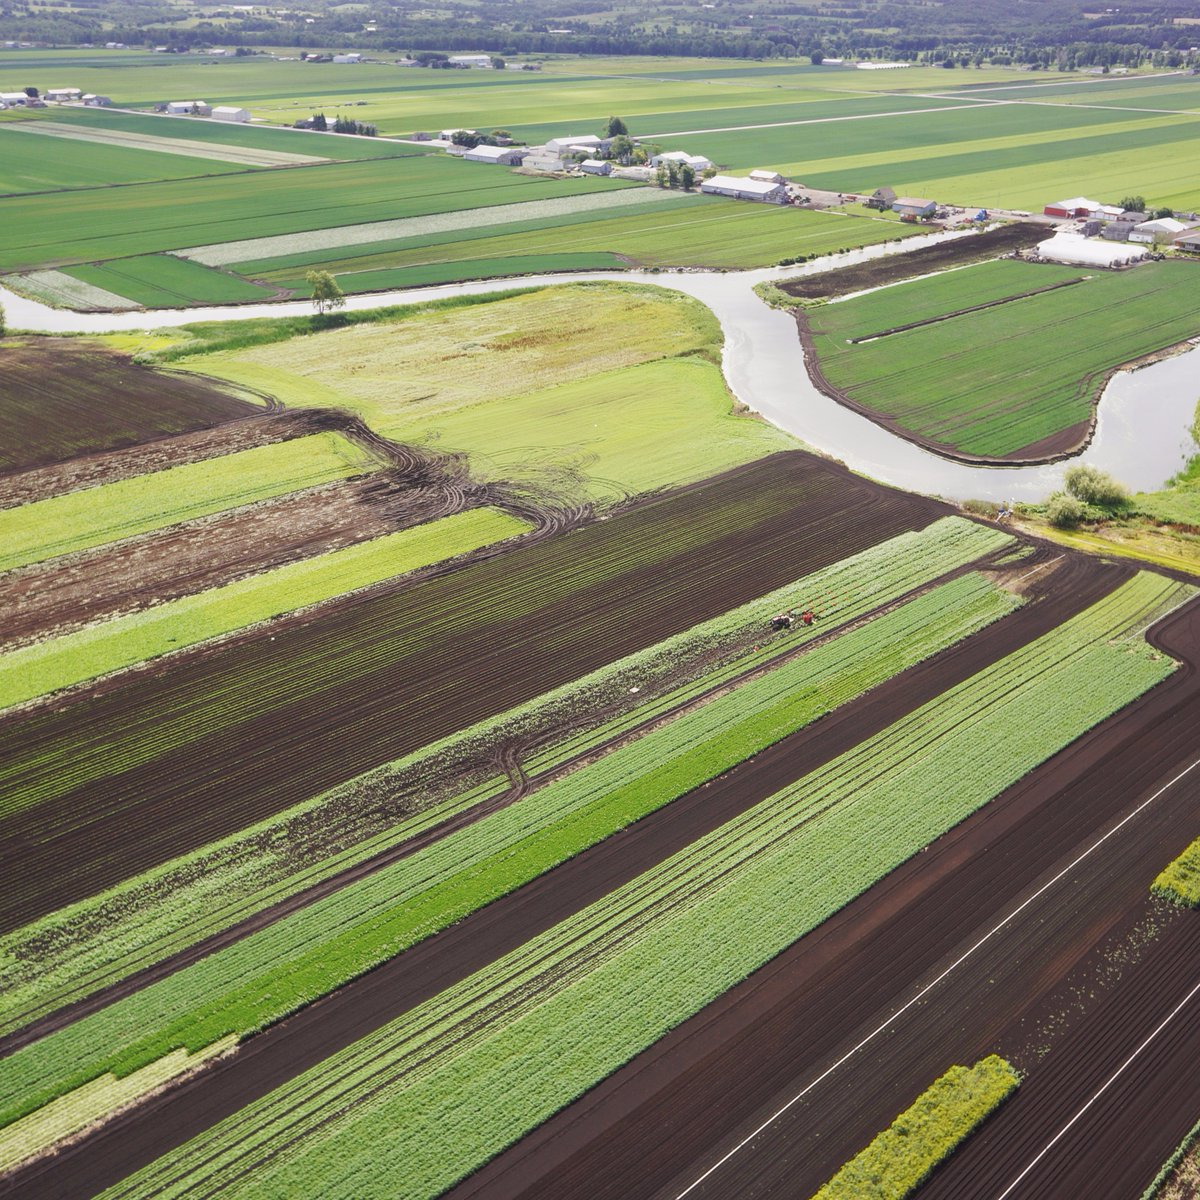 The Growing season is in full swing at the Holland Marsh!  http:// higheye.ca/aerial-imaging -blog/empowering-the-growers-high-eye-expands-ndvi-research/ &nbsp; …  @uofg @UofGResearch #UAV #NDVI $UAV $UAV.C<br>http://pic.twitter.com/SOc9IoPOHE